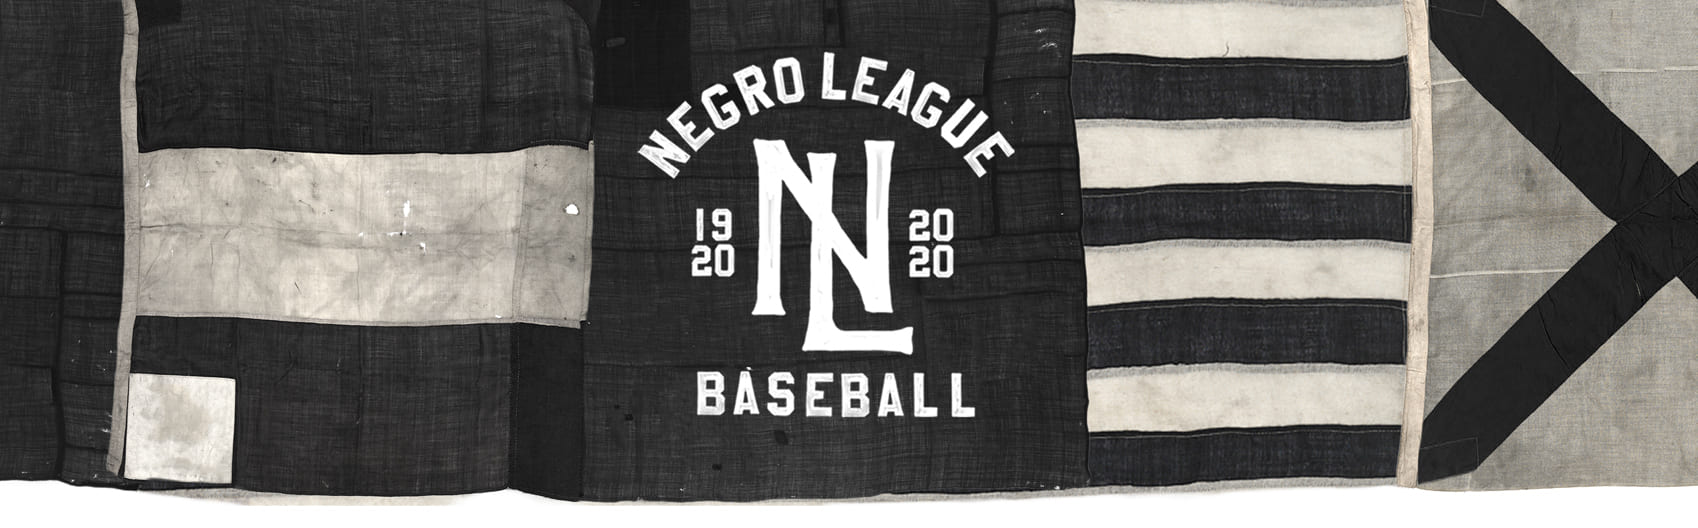 Roots of Fight collaboration with CC Sabathia, Major League Players Association (MLBPA) and the Negro Leagues Baseball Museum (NLBM) to celebrate the 100 year centennial anniversary of the leagues. Featuring Jackie Robinson pieces.